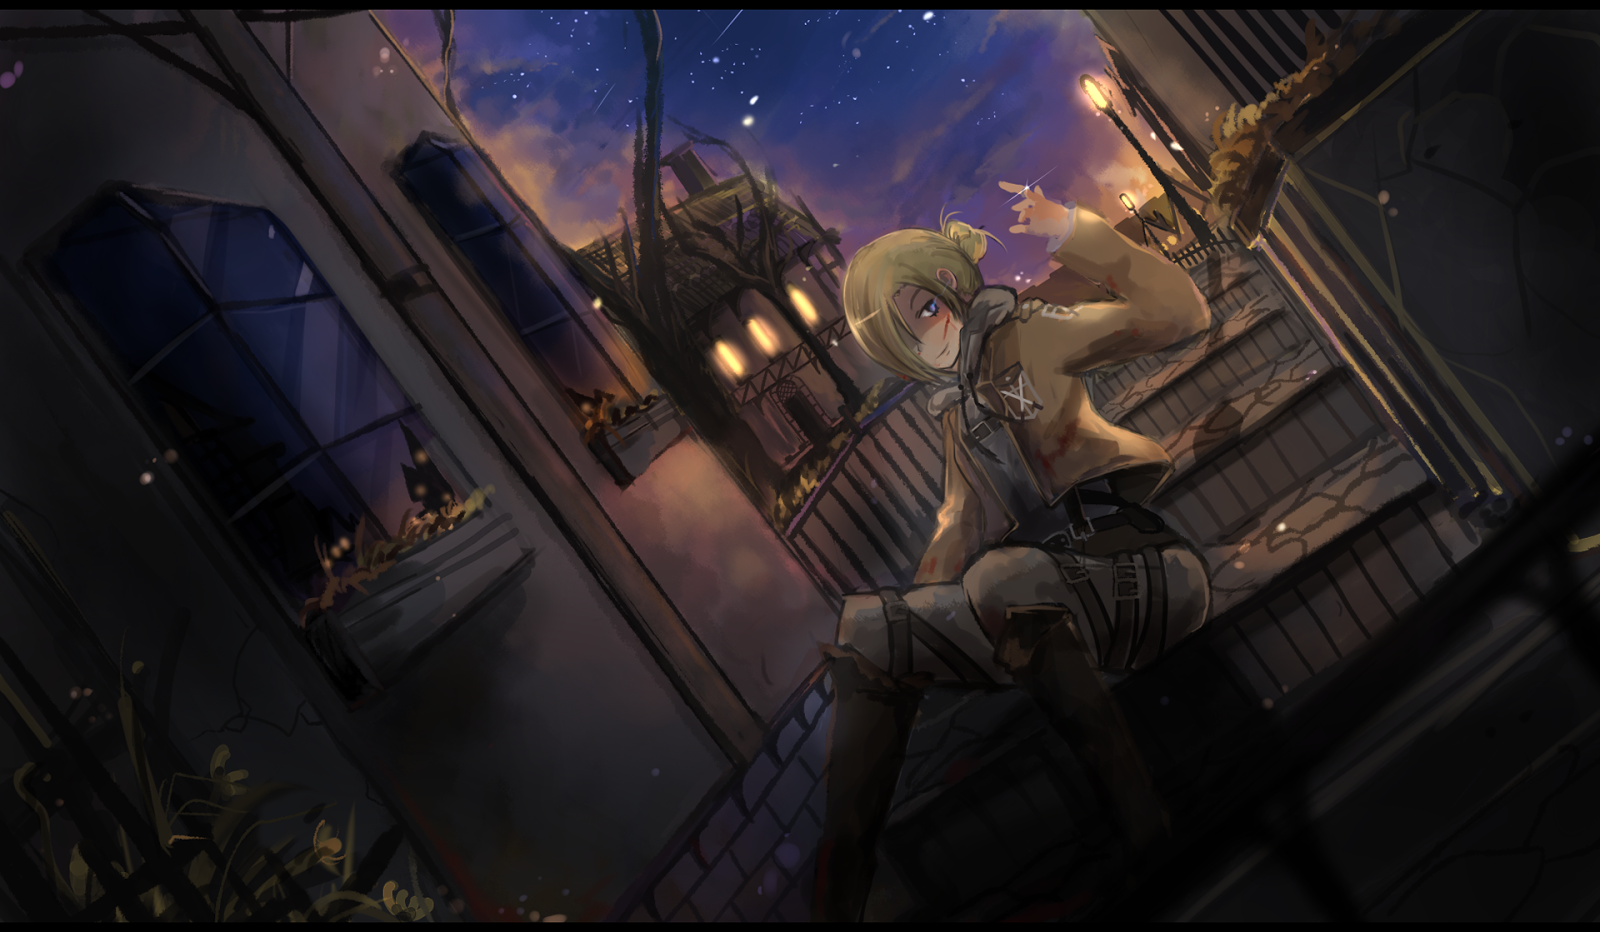 Annie Leonhardt Attack on Titan Shingeki no Kyojin Female Blonde Hair 1600x932